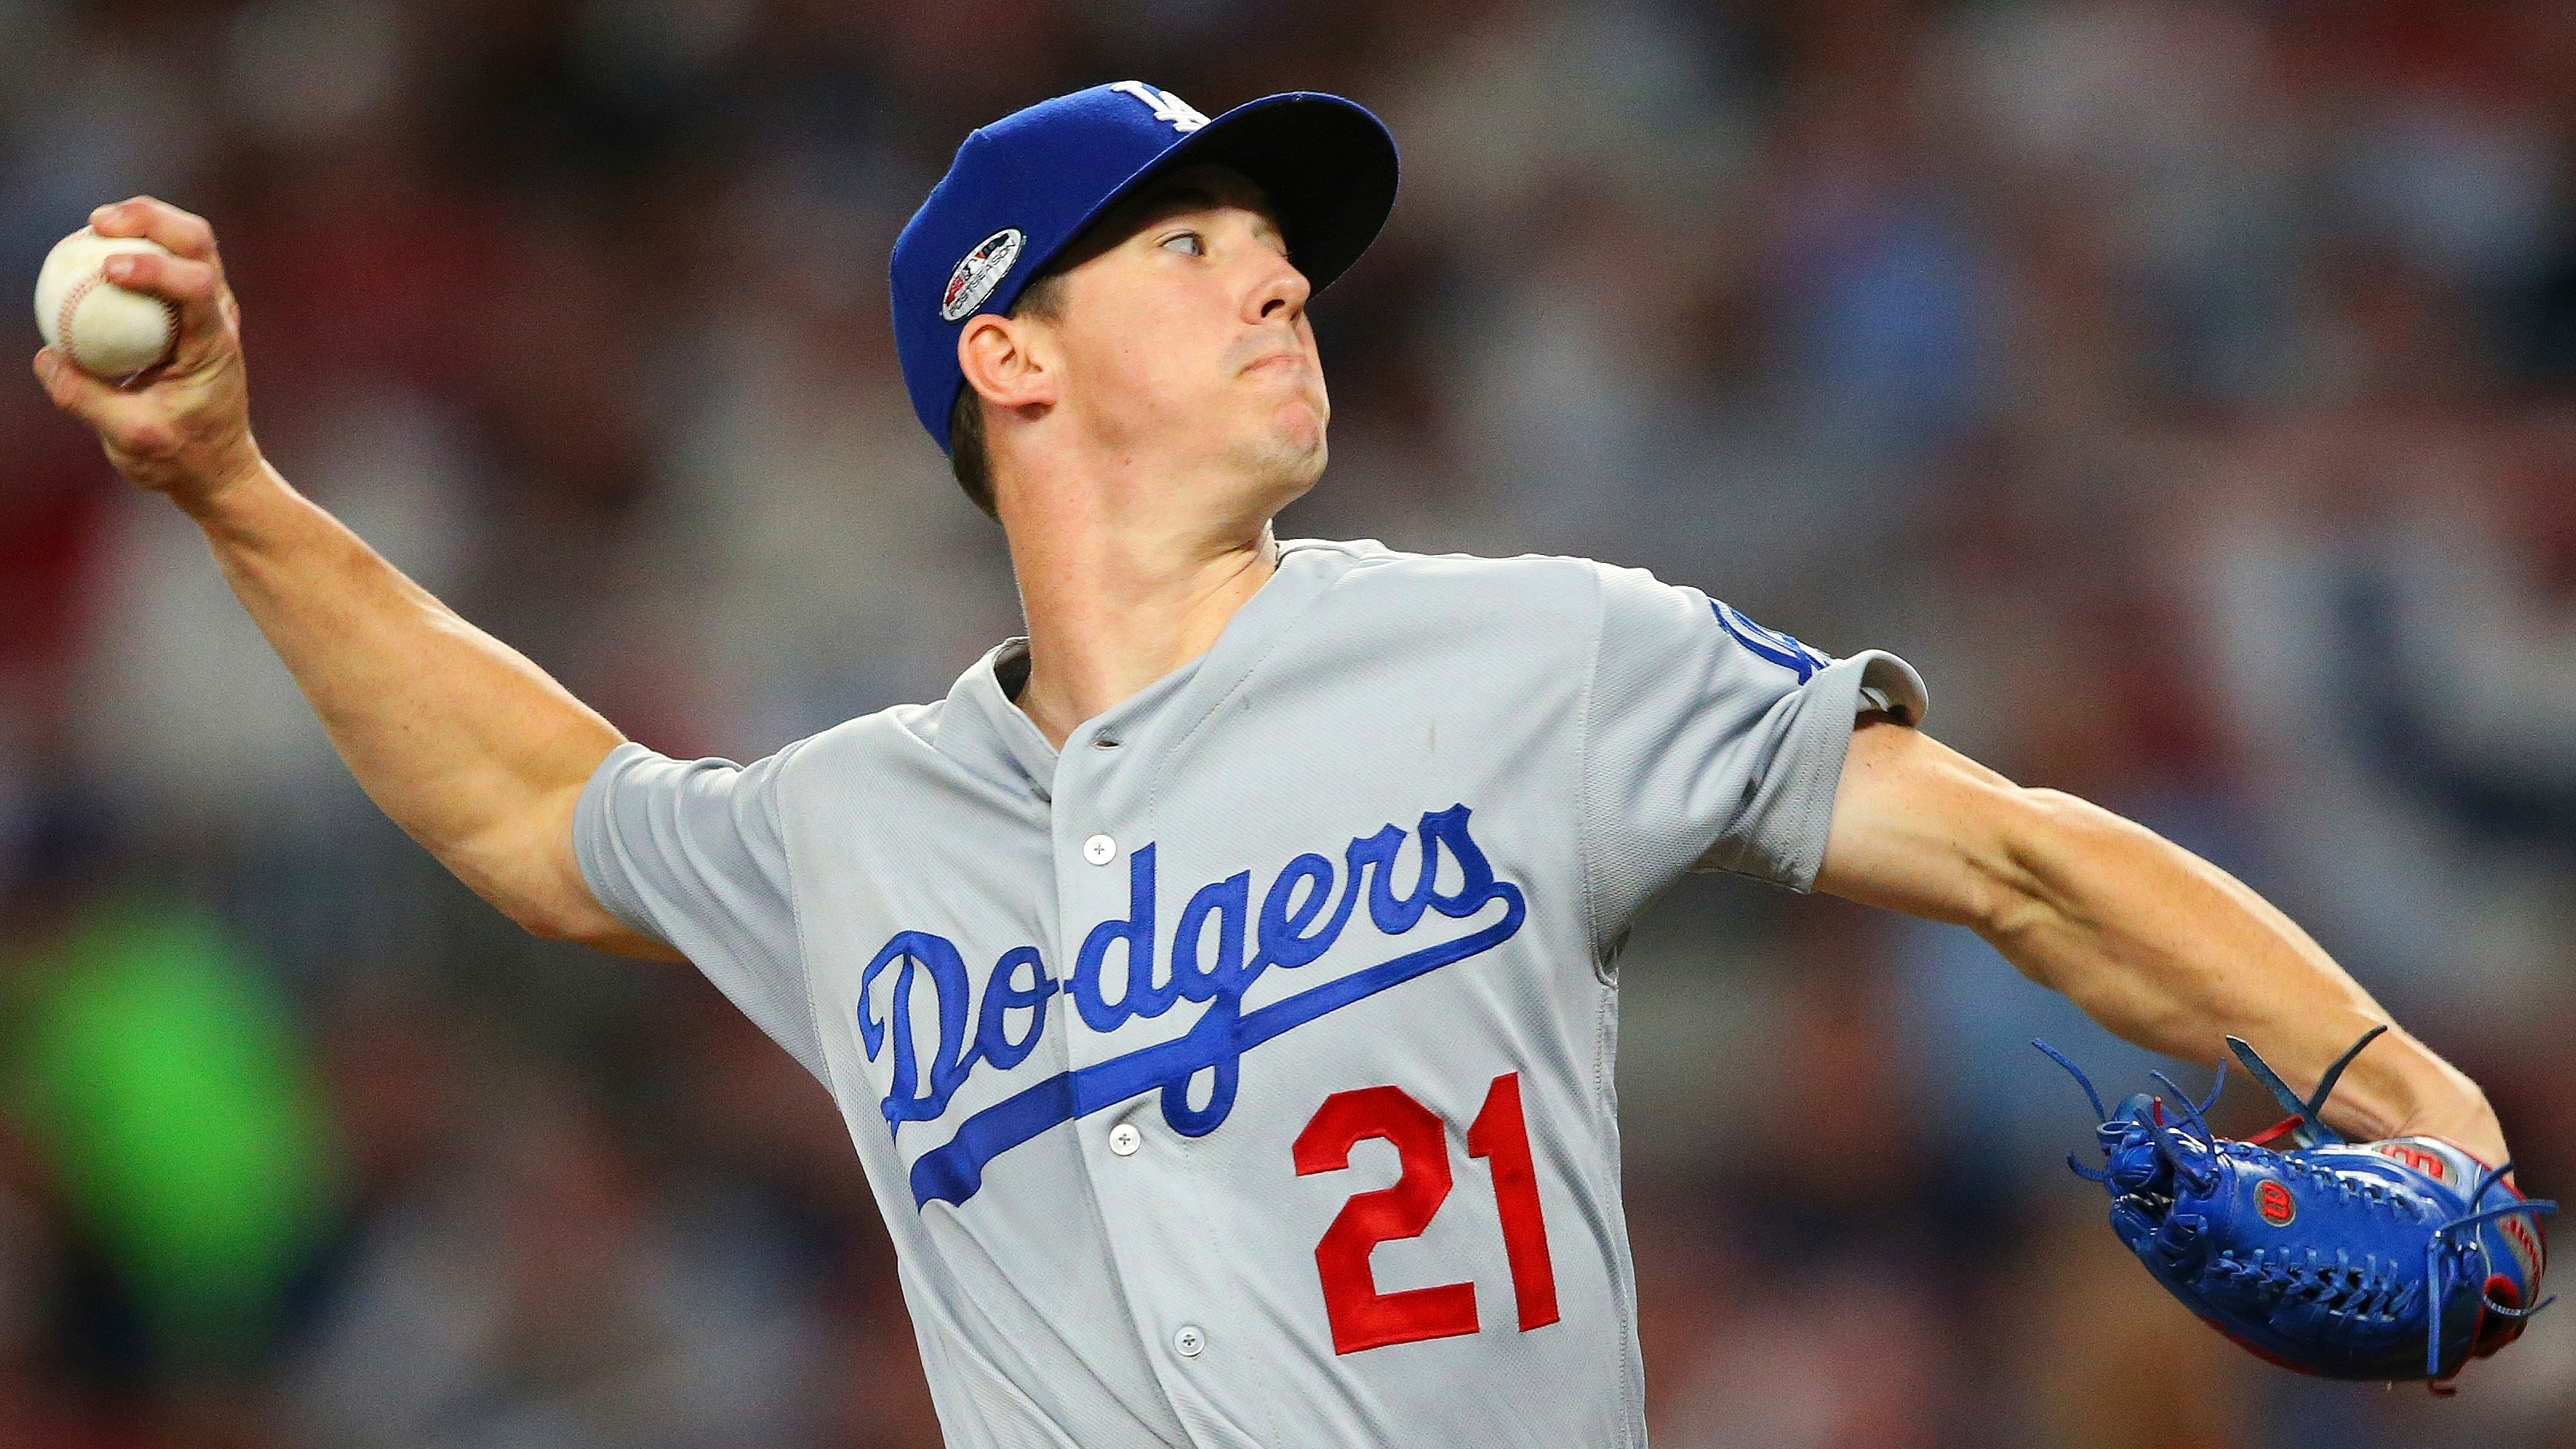 NLCS Game 3 preview: Dodgers heavy favorites to take